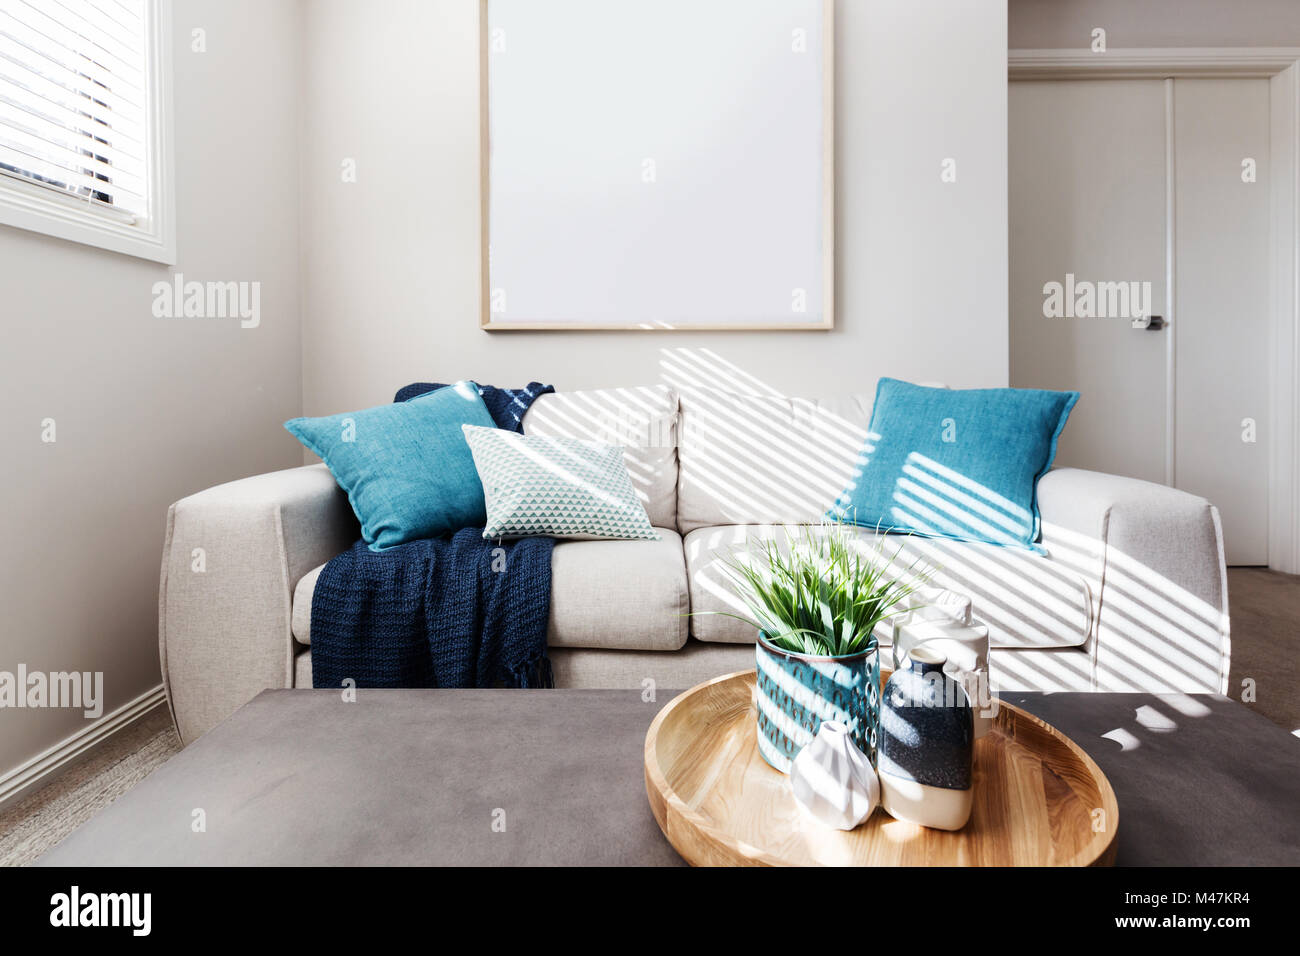 Living room sofa with blank picture mock up for your artwork - Stock Image